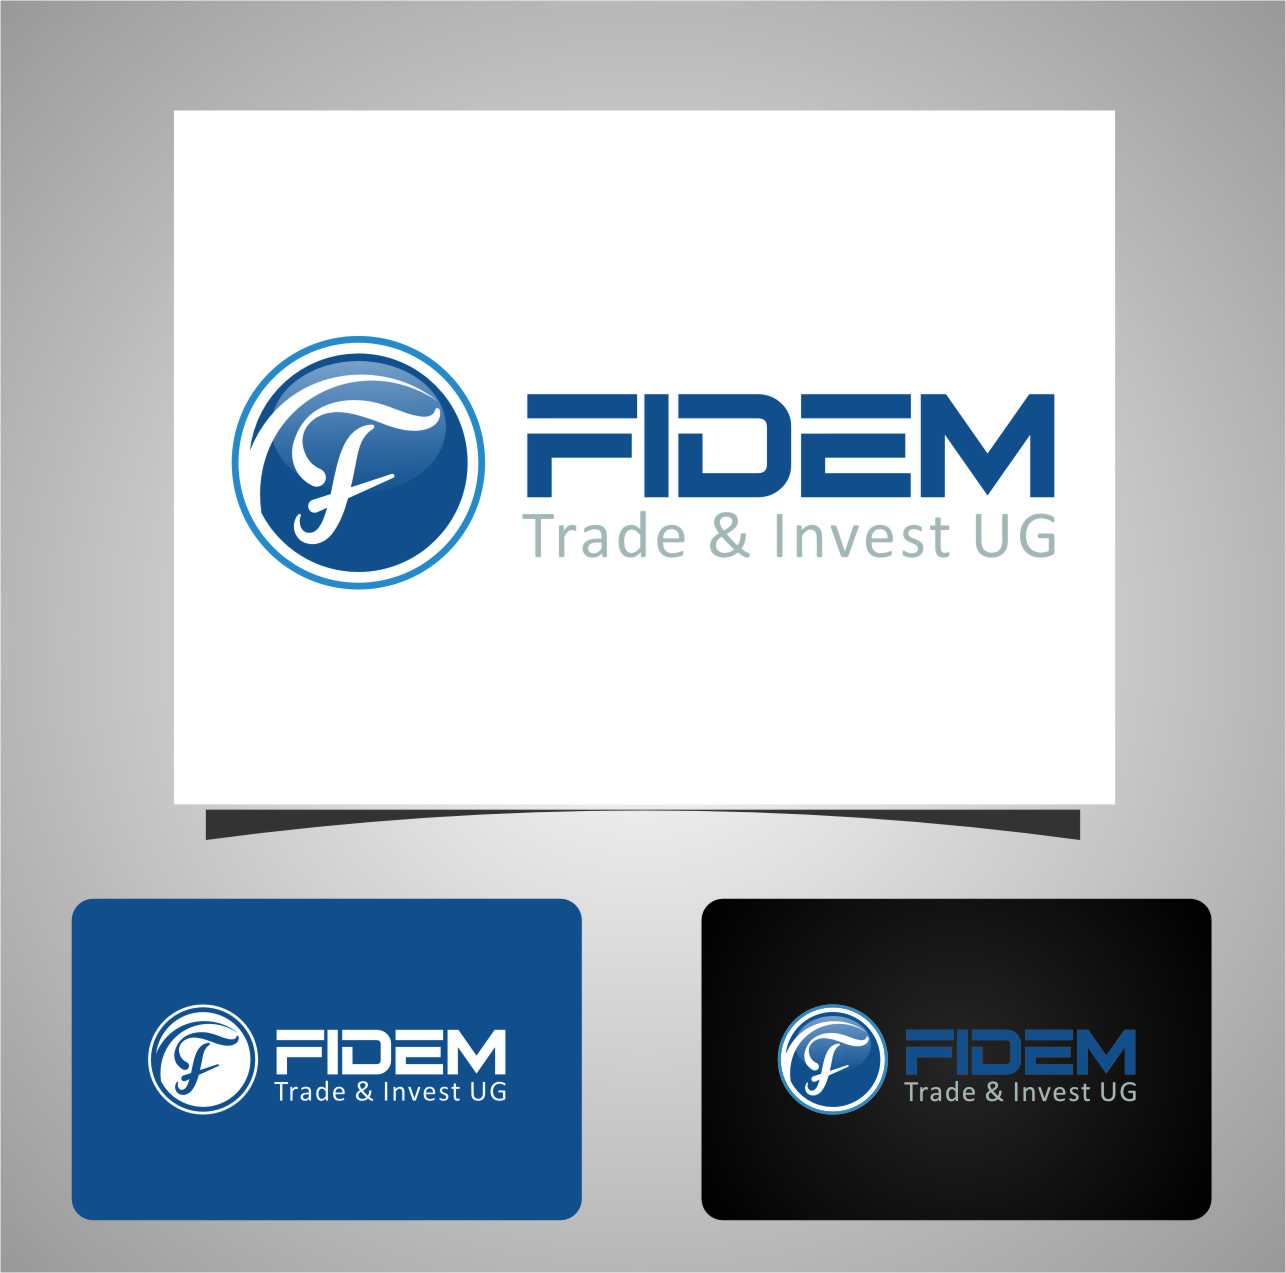 Logo Design by RasYa Muhammad Athaya - Entry No. 805 in the Logo Design Contest Professional Logo Design for FIDEM Trade & Invest UG.